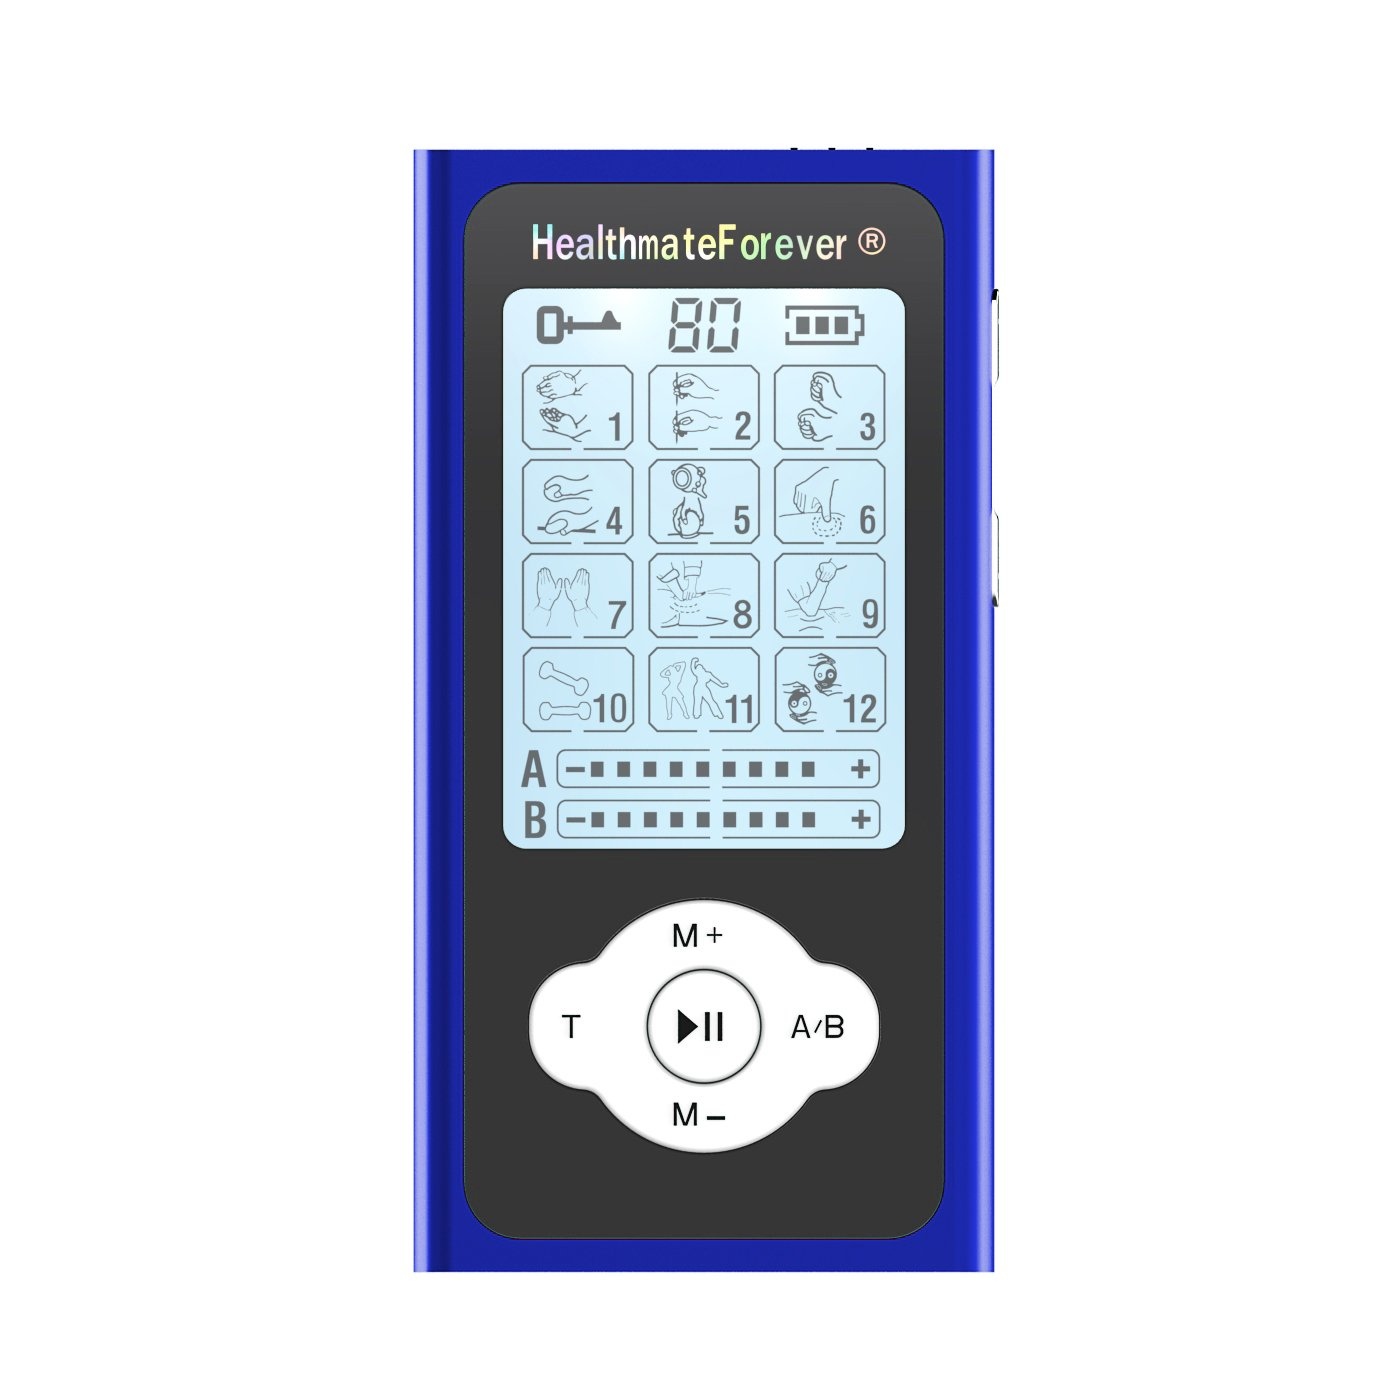 PRO12ABQ HealthmateForever TENS Unit Electrical Muscle Stimulator Blue + 10 Pairs of Pads